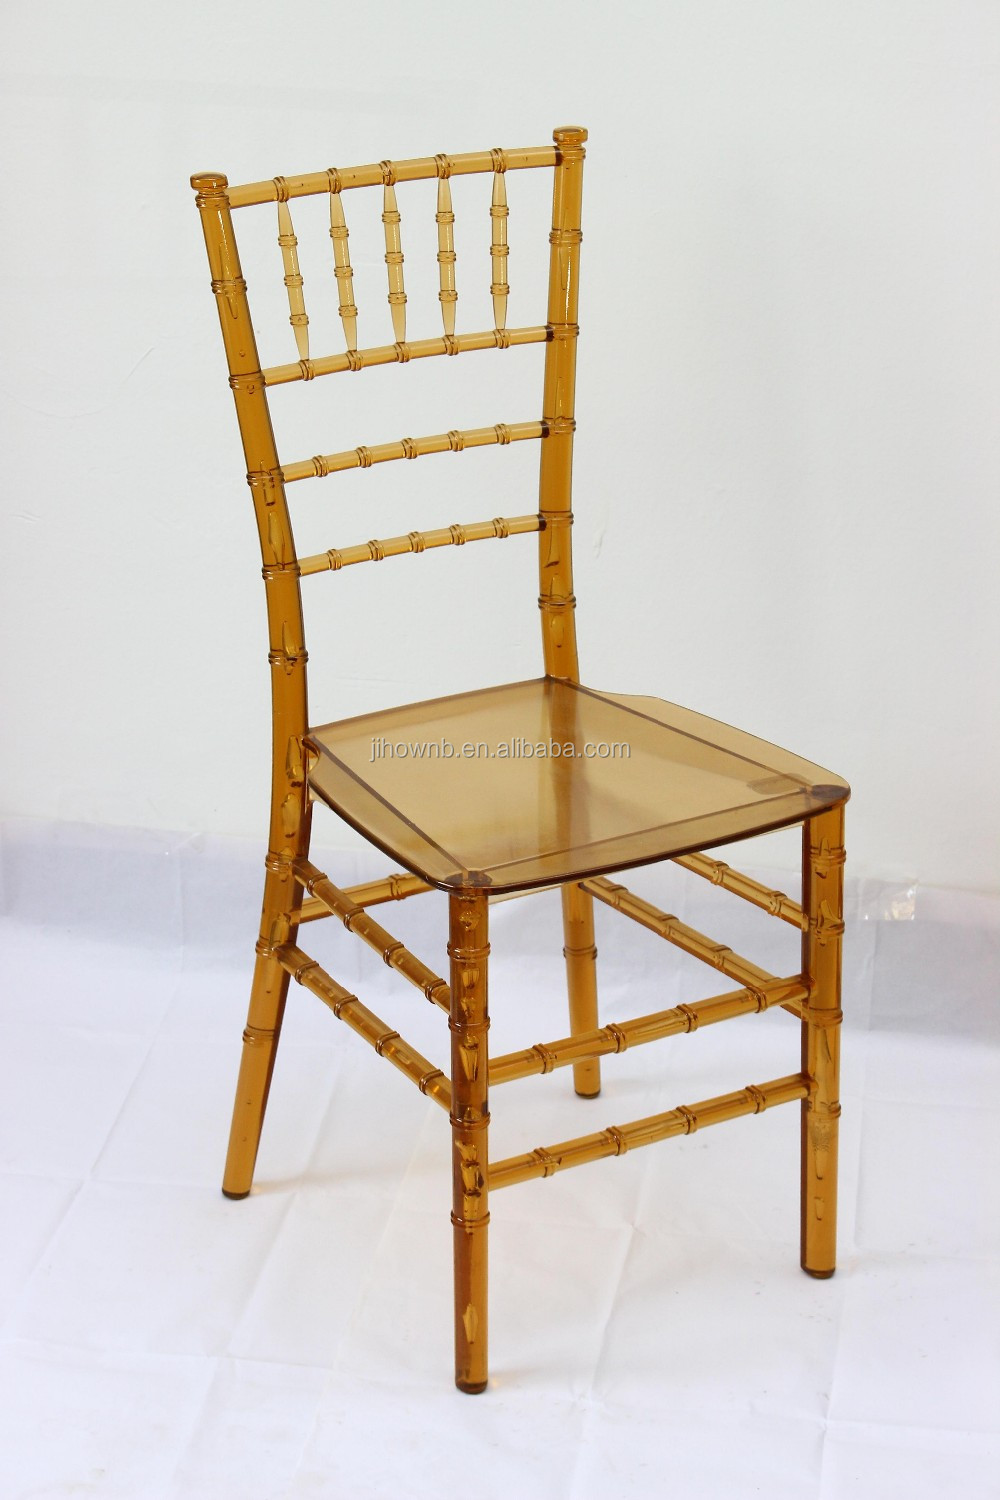 Acrylic Tiffany Chairs Chiavari Chair From China Wholesale